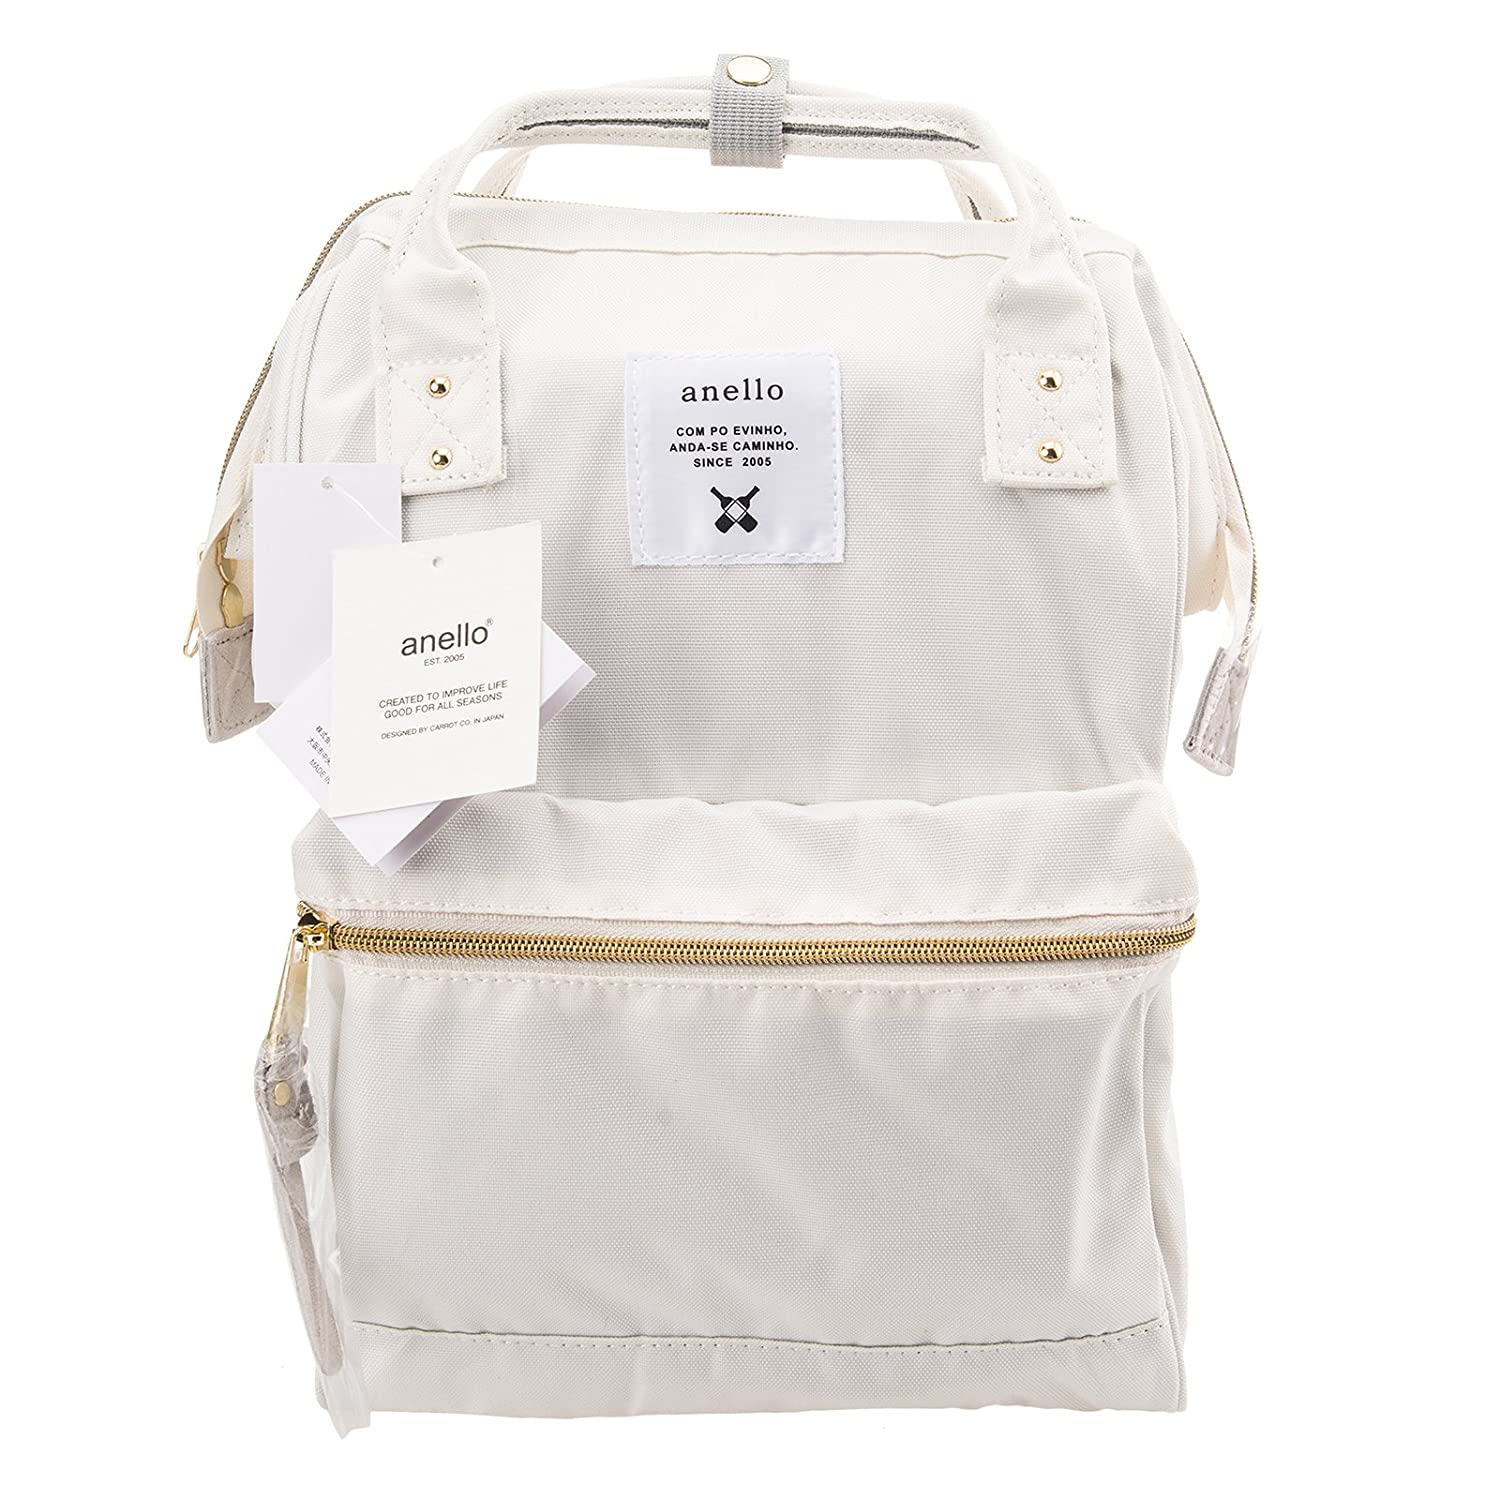 b3dcdd2e5cc6 Anello Official White (Small Size) Japan Fashion Shoulder Rucksack Backpack  Casual Tablet Bag Unisex